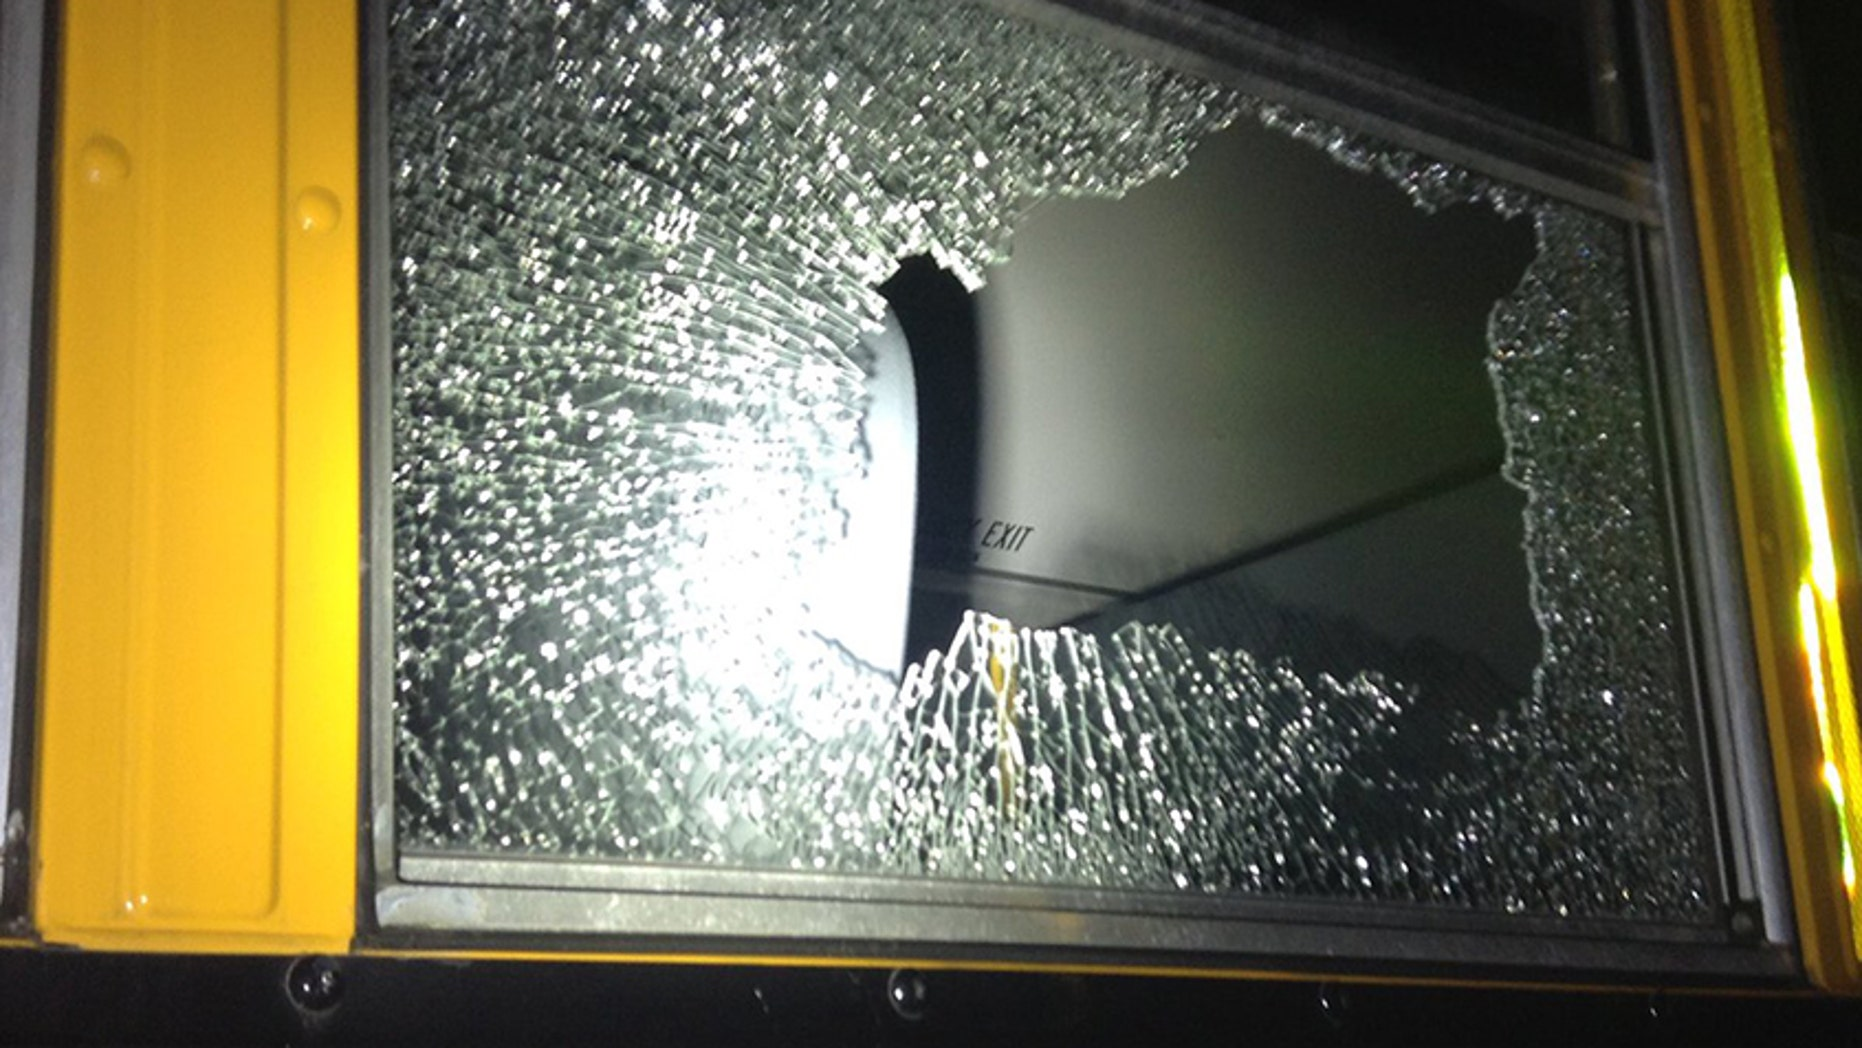 A 10-year-old boy allegedly shot at two school buses with a BB gun.